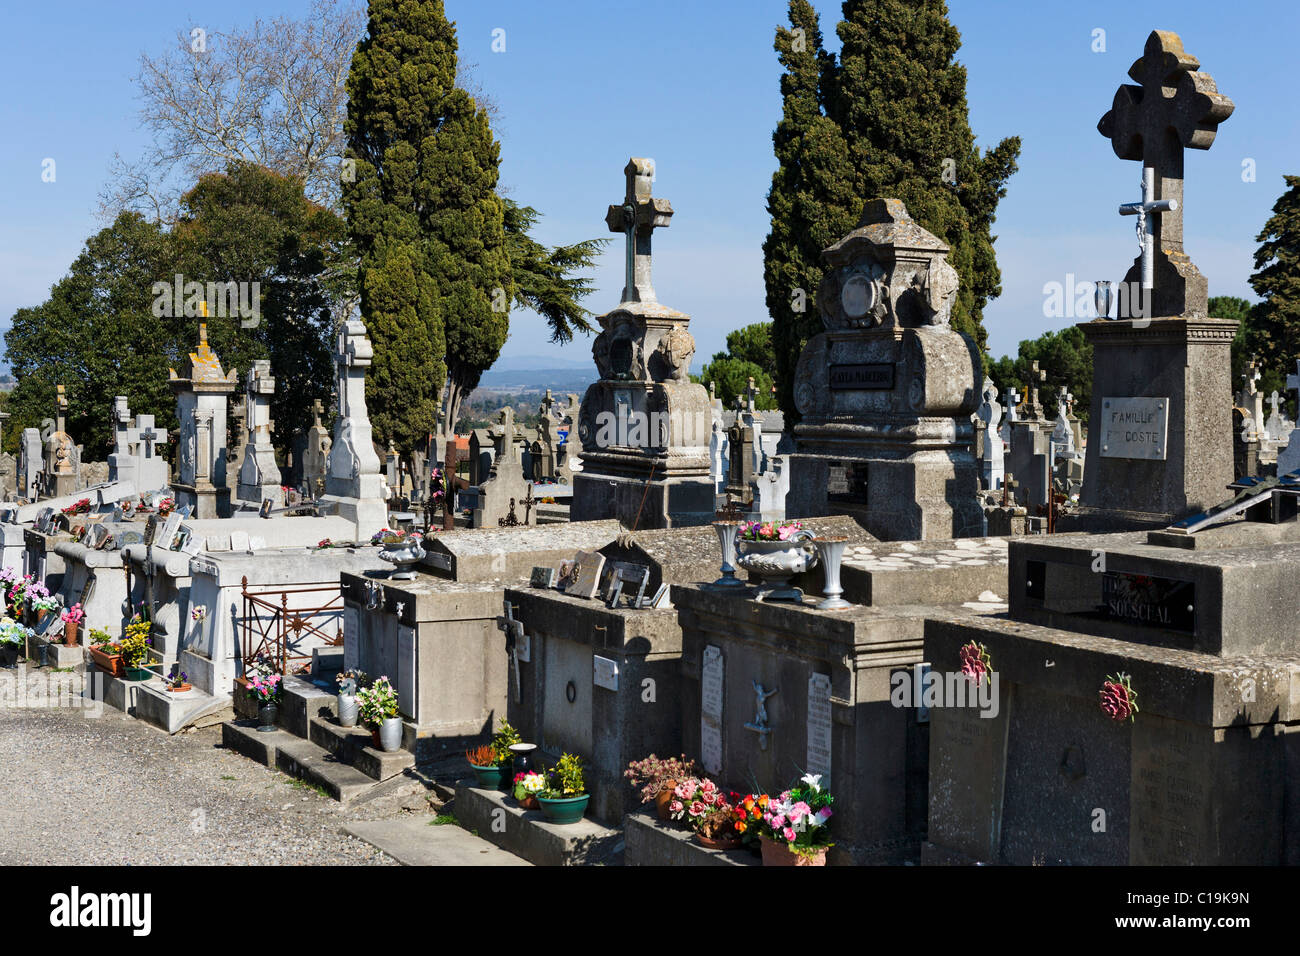 Graveyard outside the old walled city (Cite) in Carcassonne, Languedoc, France - Stock Image